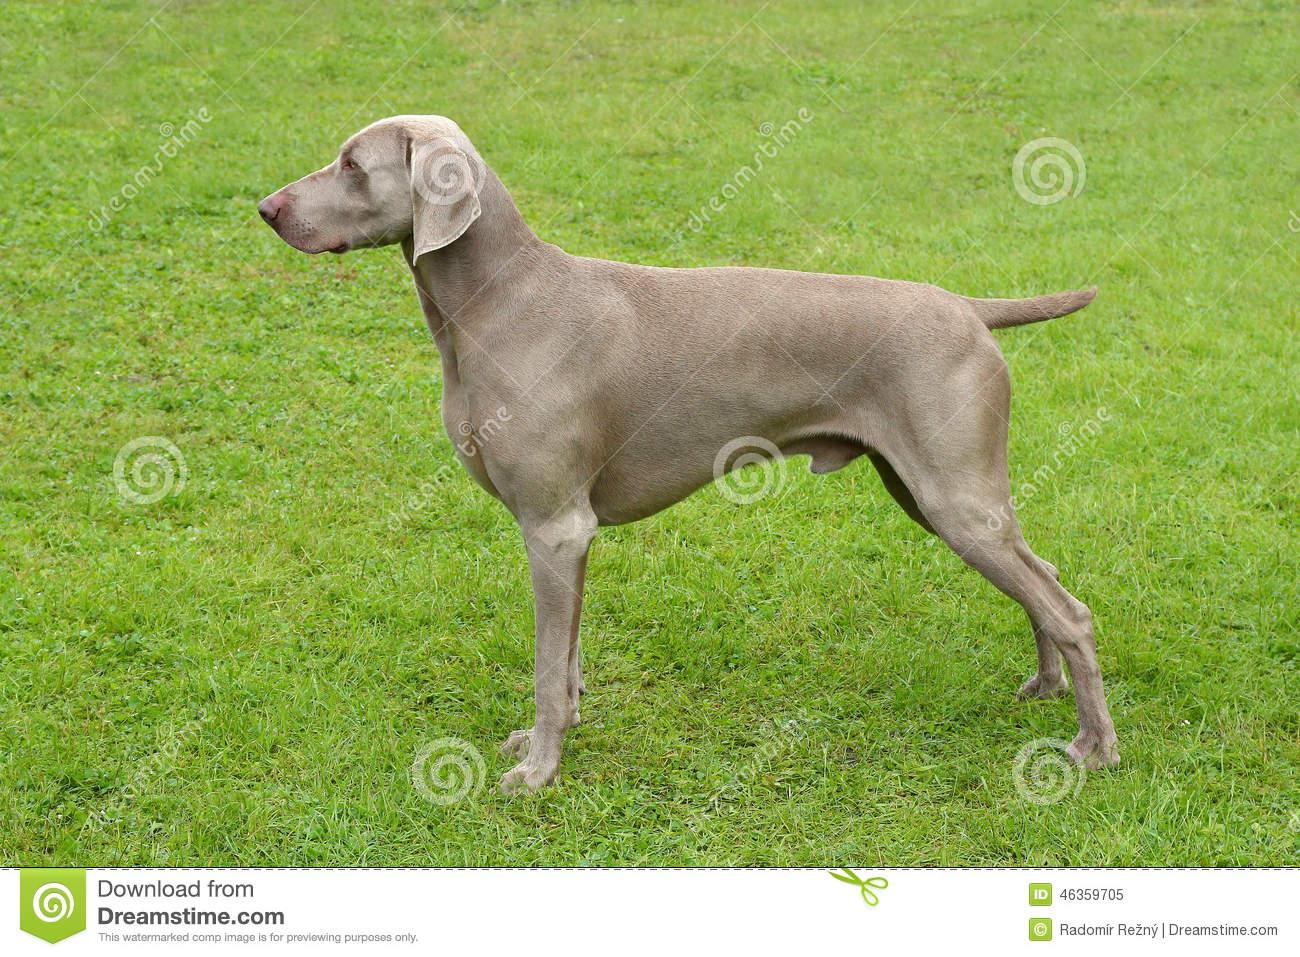 Typical Weimaraner Short-Haired Dog Stock Photo - Image: 46359705